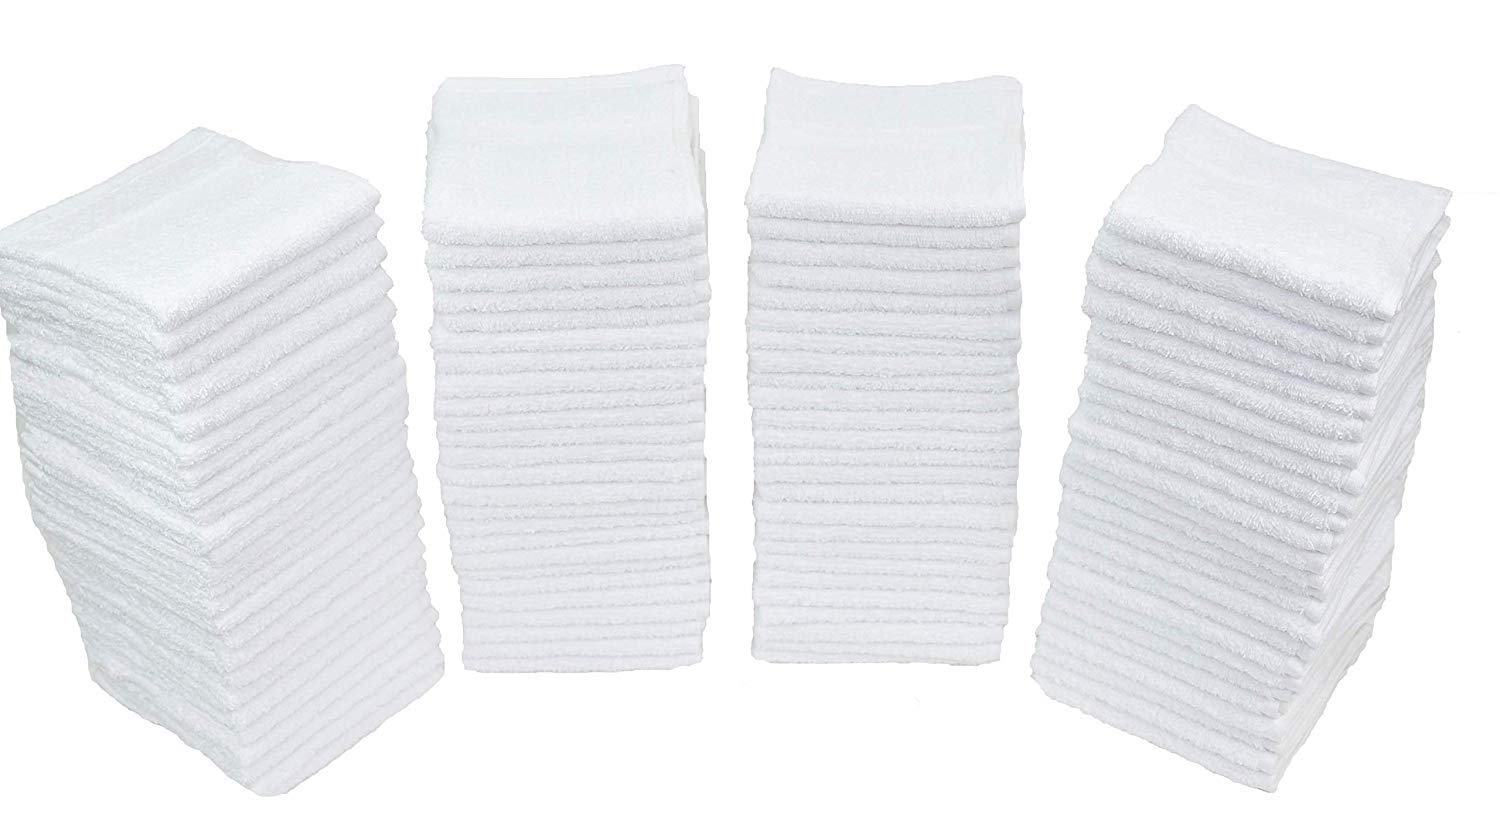 Simpli-Magic 79171 Terry Towel Cleaning Cloths, Pack of 50